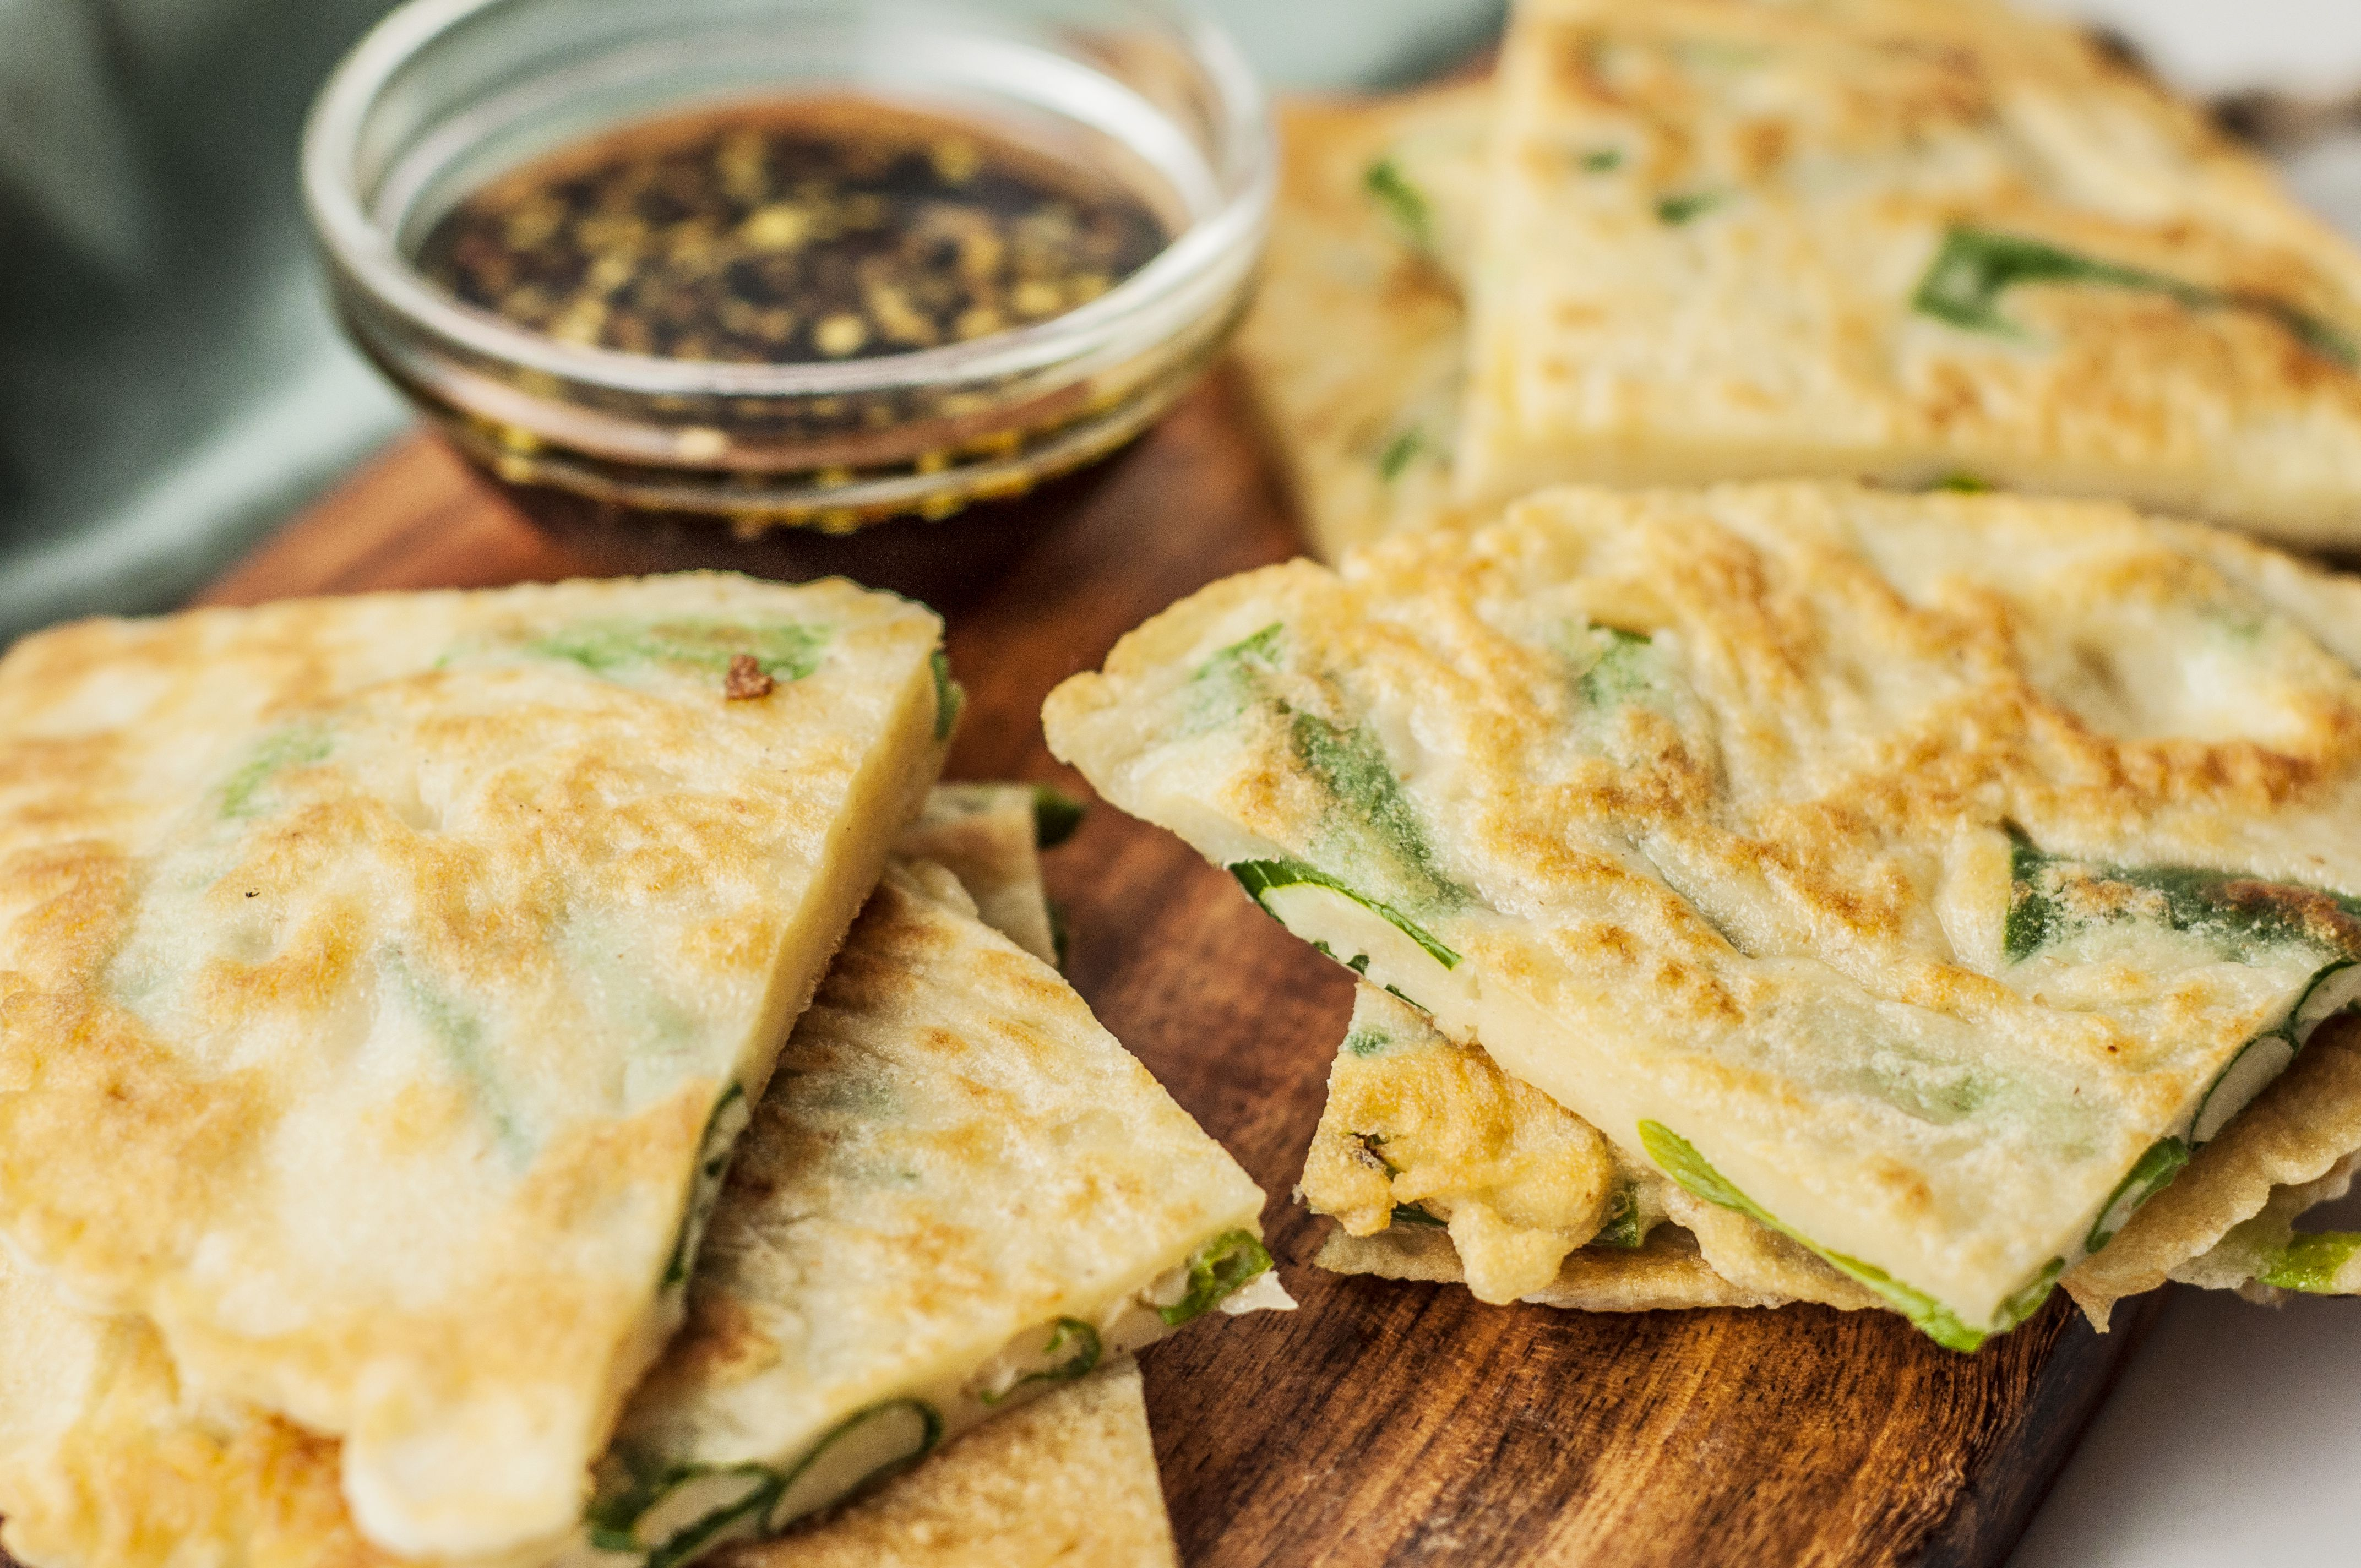 Scallion pancakes with soy sauce